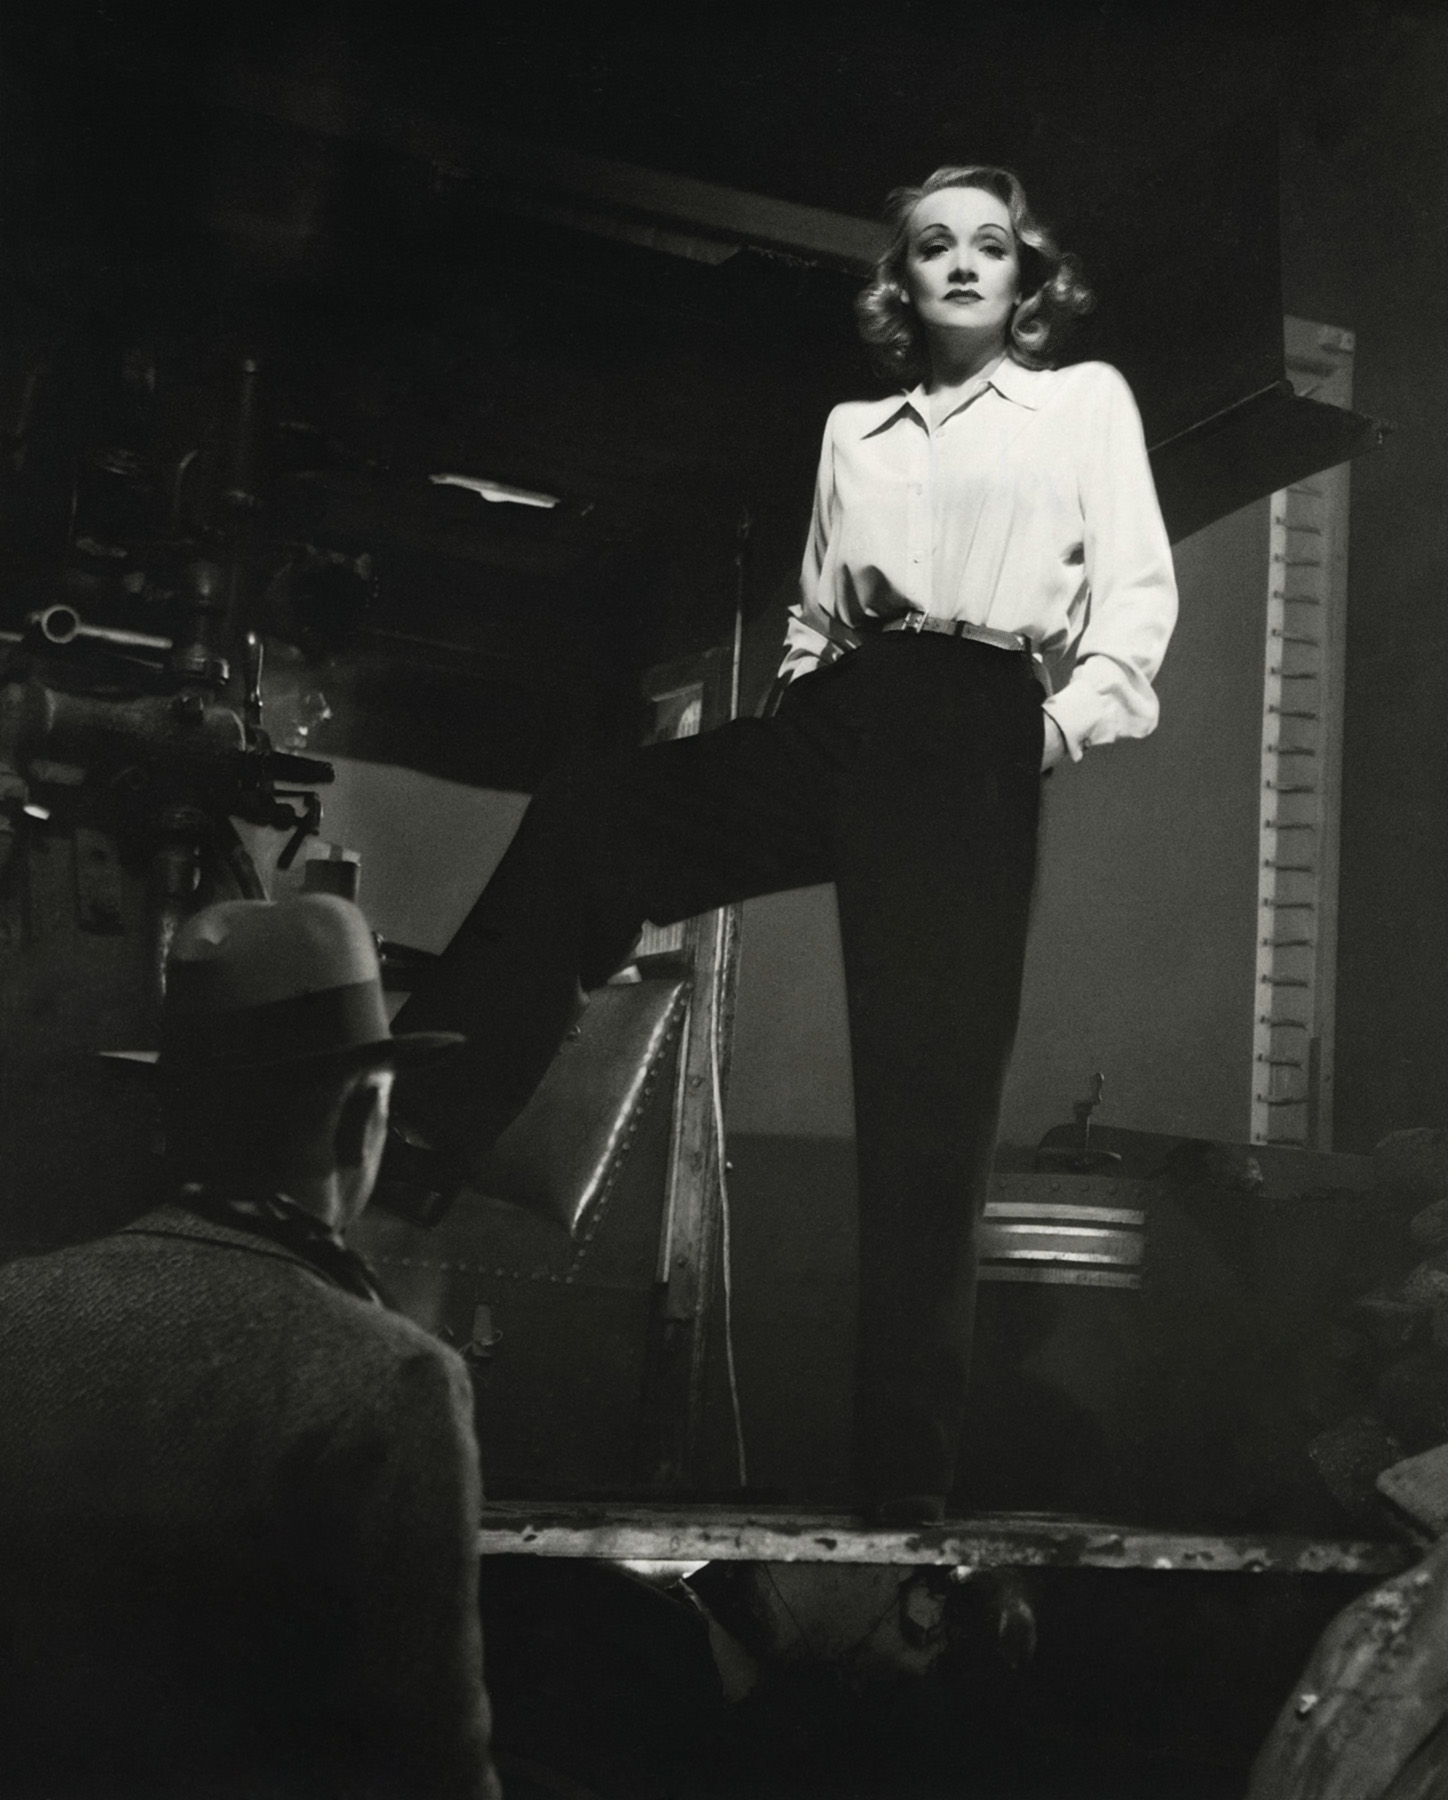 http://www.doctormacro.com/Images/Dietrich,%20Marlene/Annex/Annex%20-%20Dietrich,%20Marlene%20(Seven%20Sinners)_07.jpg